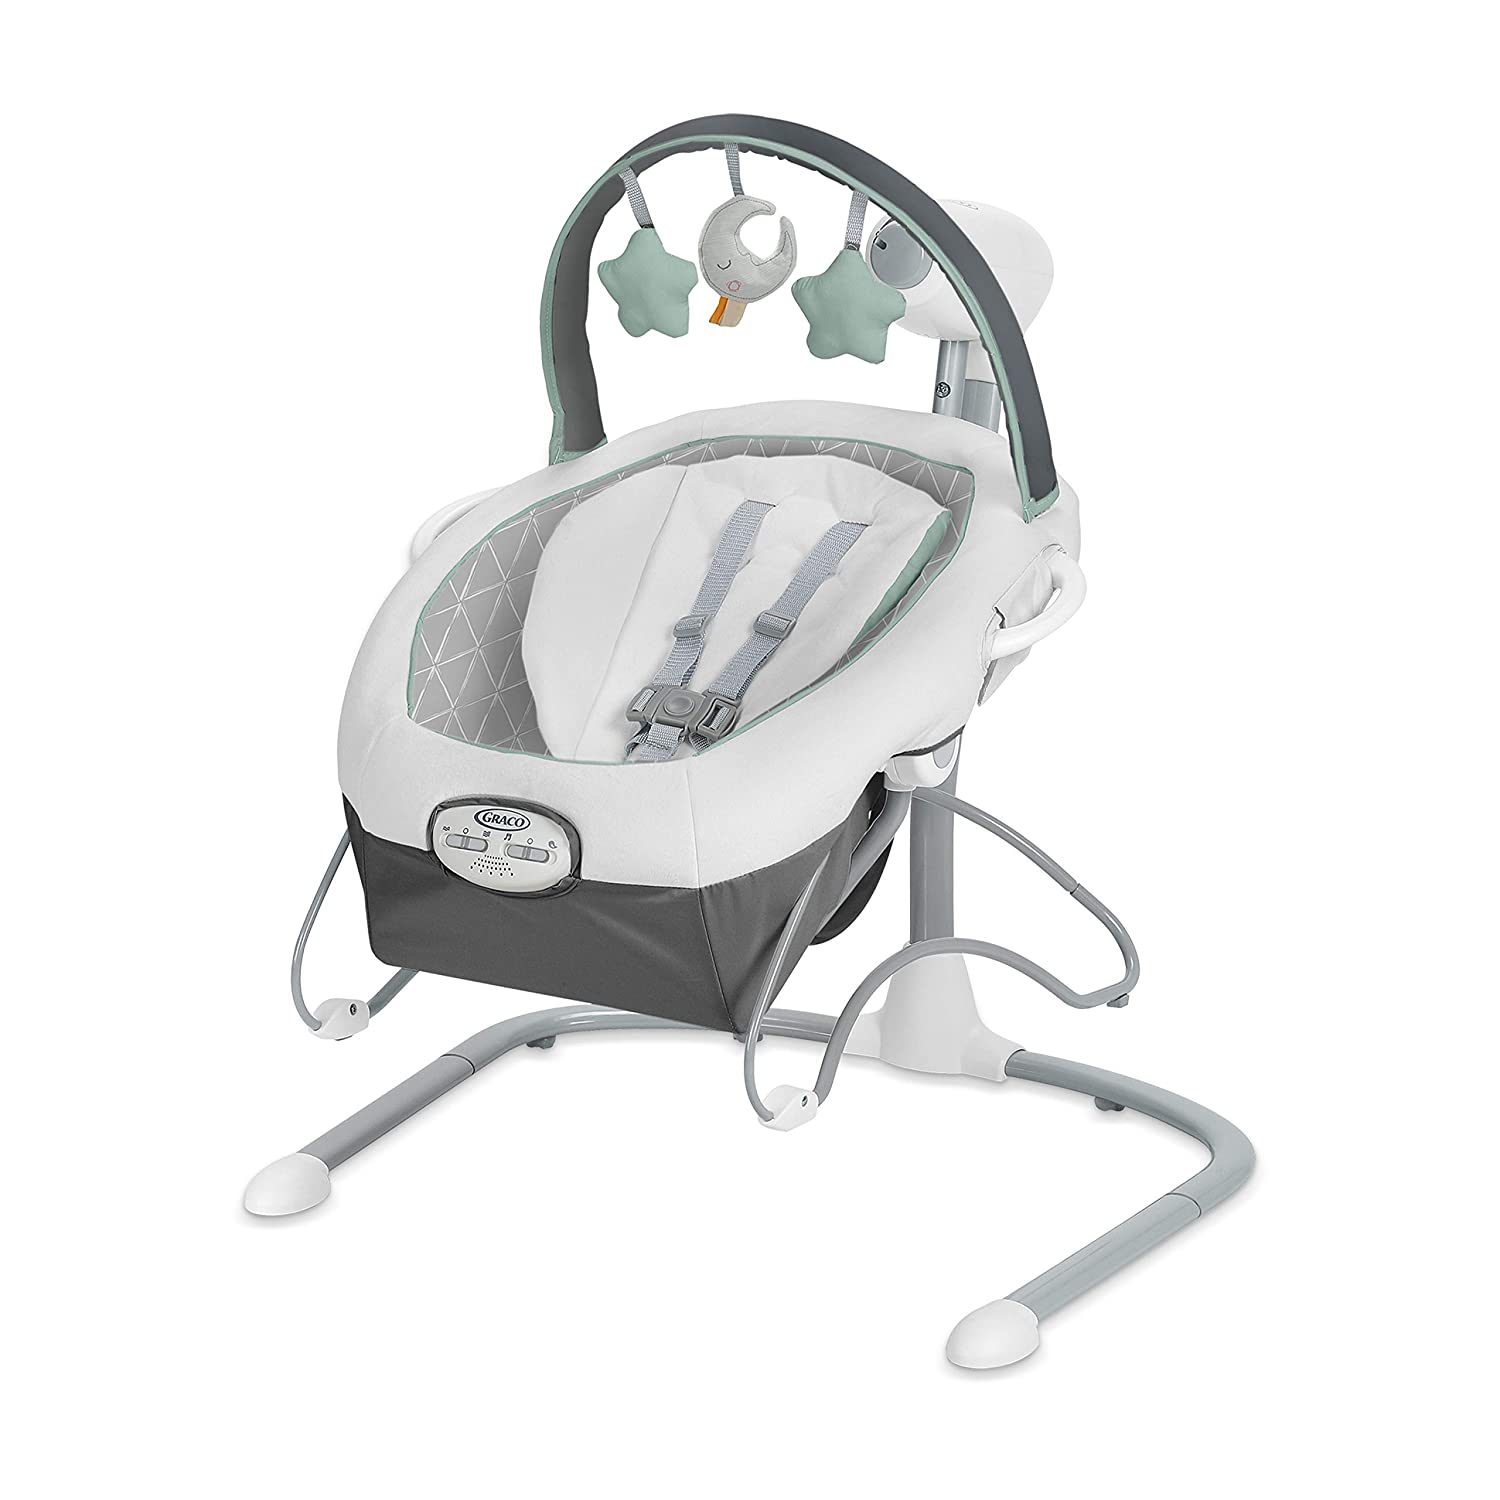 Best infant swing for small spaces